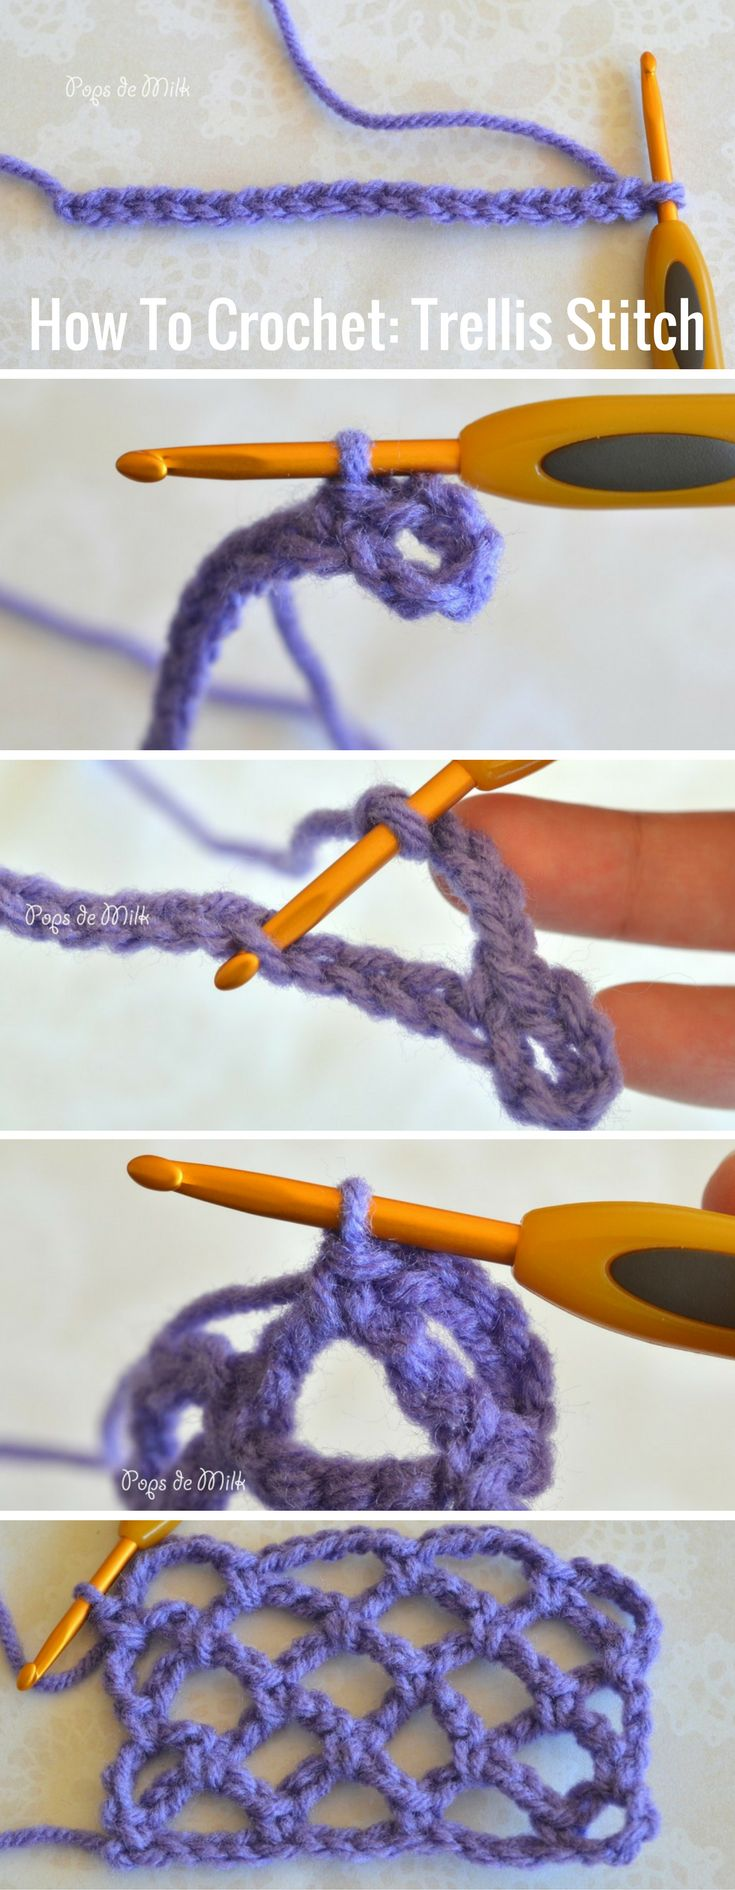 How To Crochet: Trellis Stitch Step-by-step Tutorial